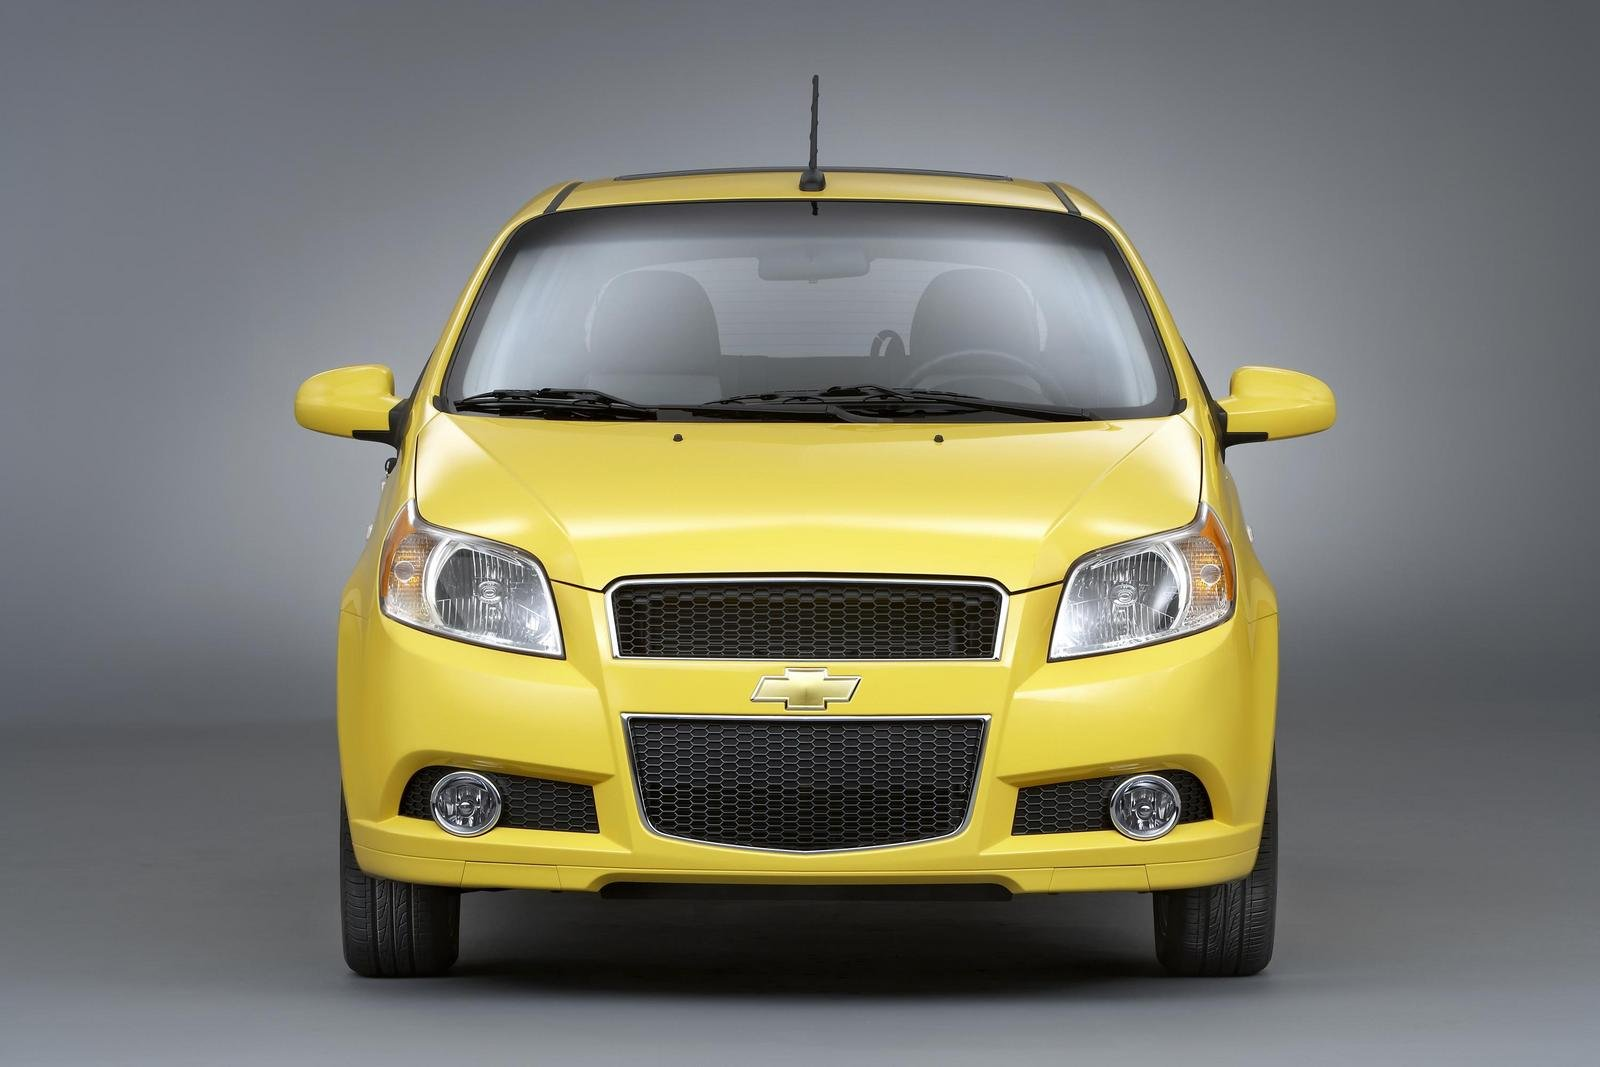 Chevrolet Aveo 5 review